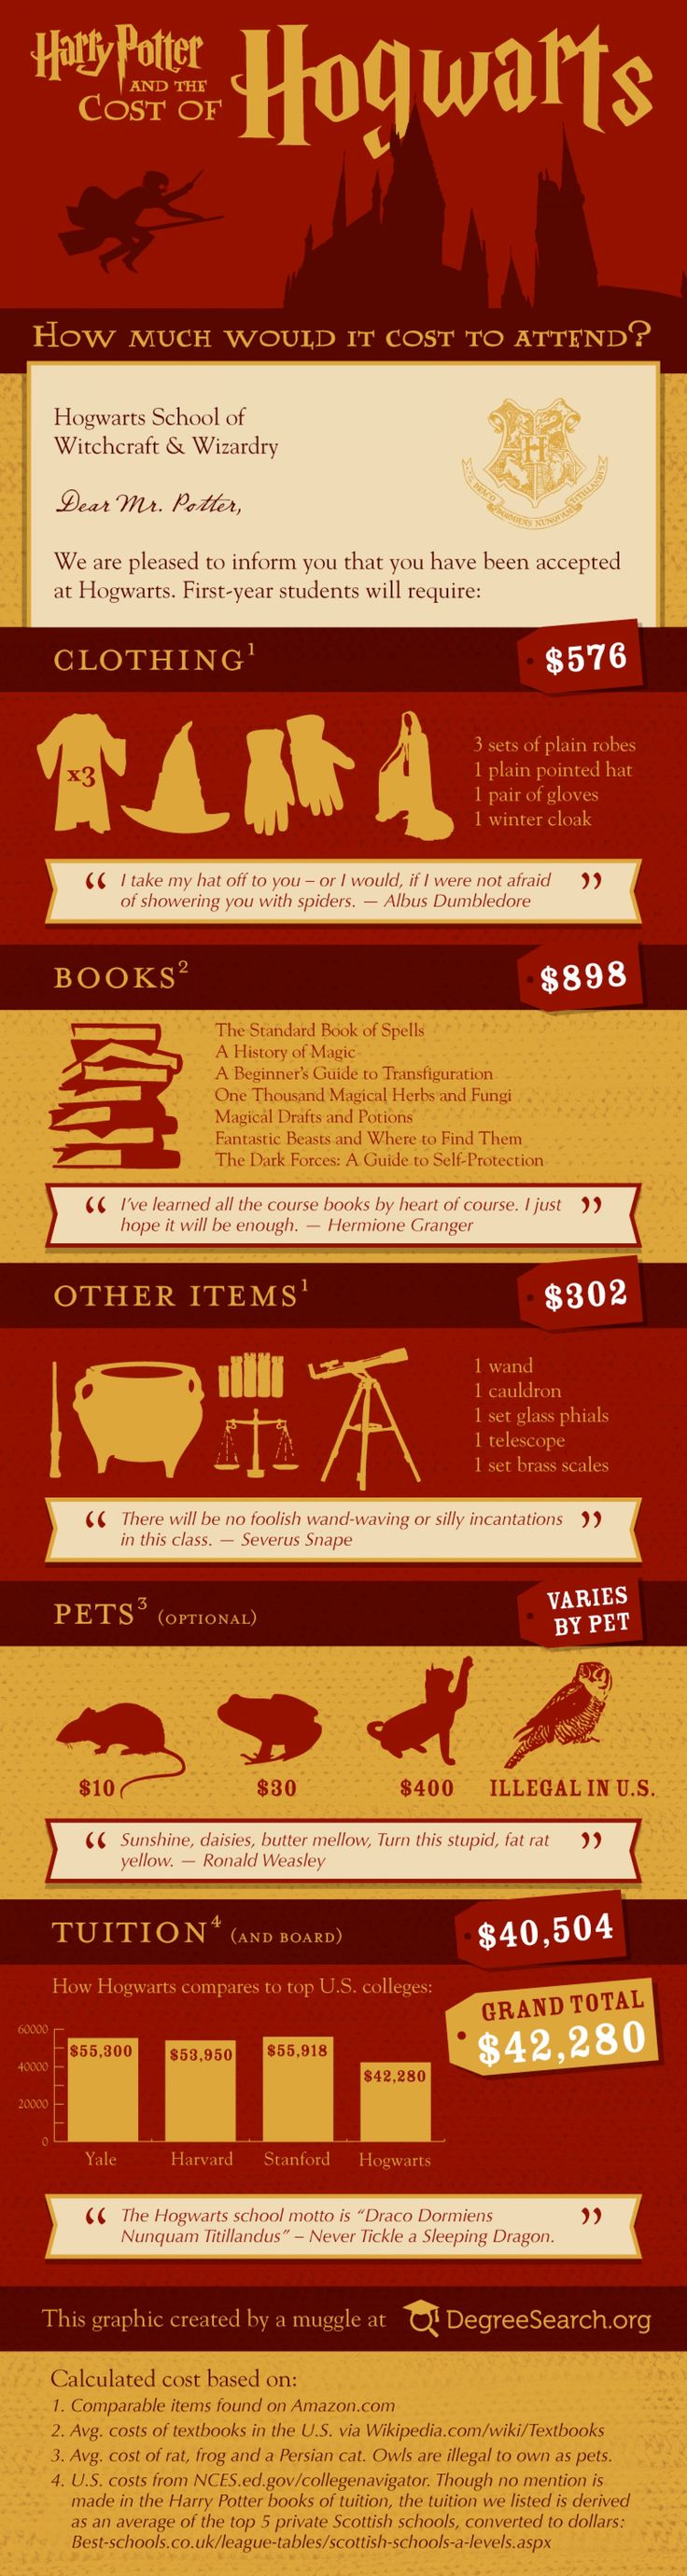 Harry Potter and the Cost of Hogwarts Infographic   Um they picked the most expensive things, obviously it would be expensive that way. Like dude. Learn to price on a budget xD